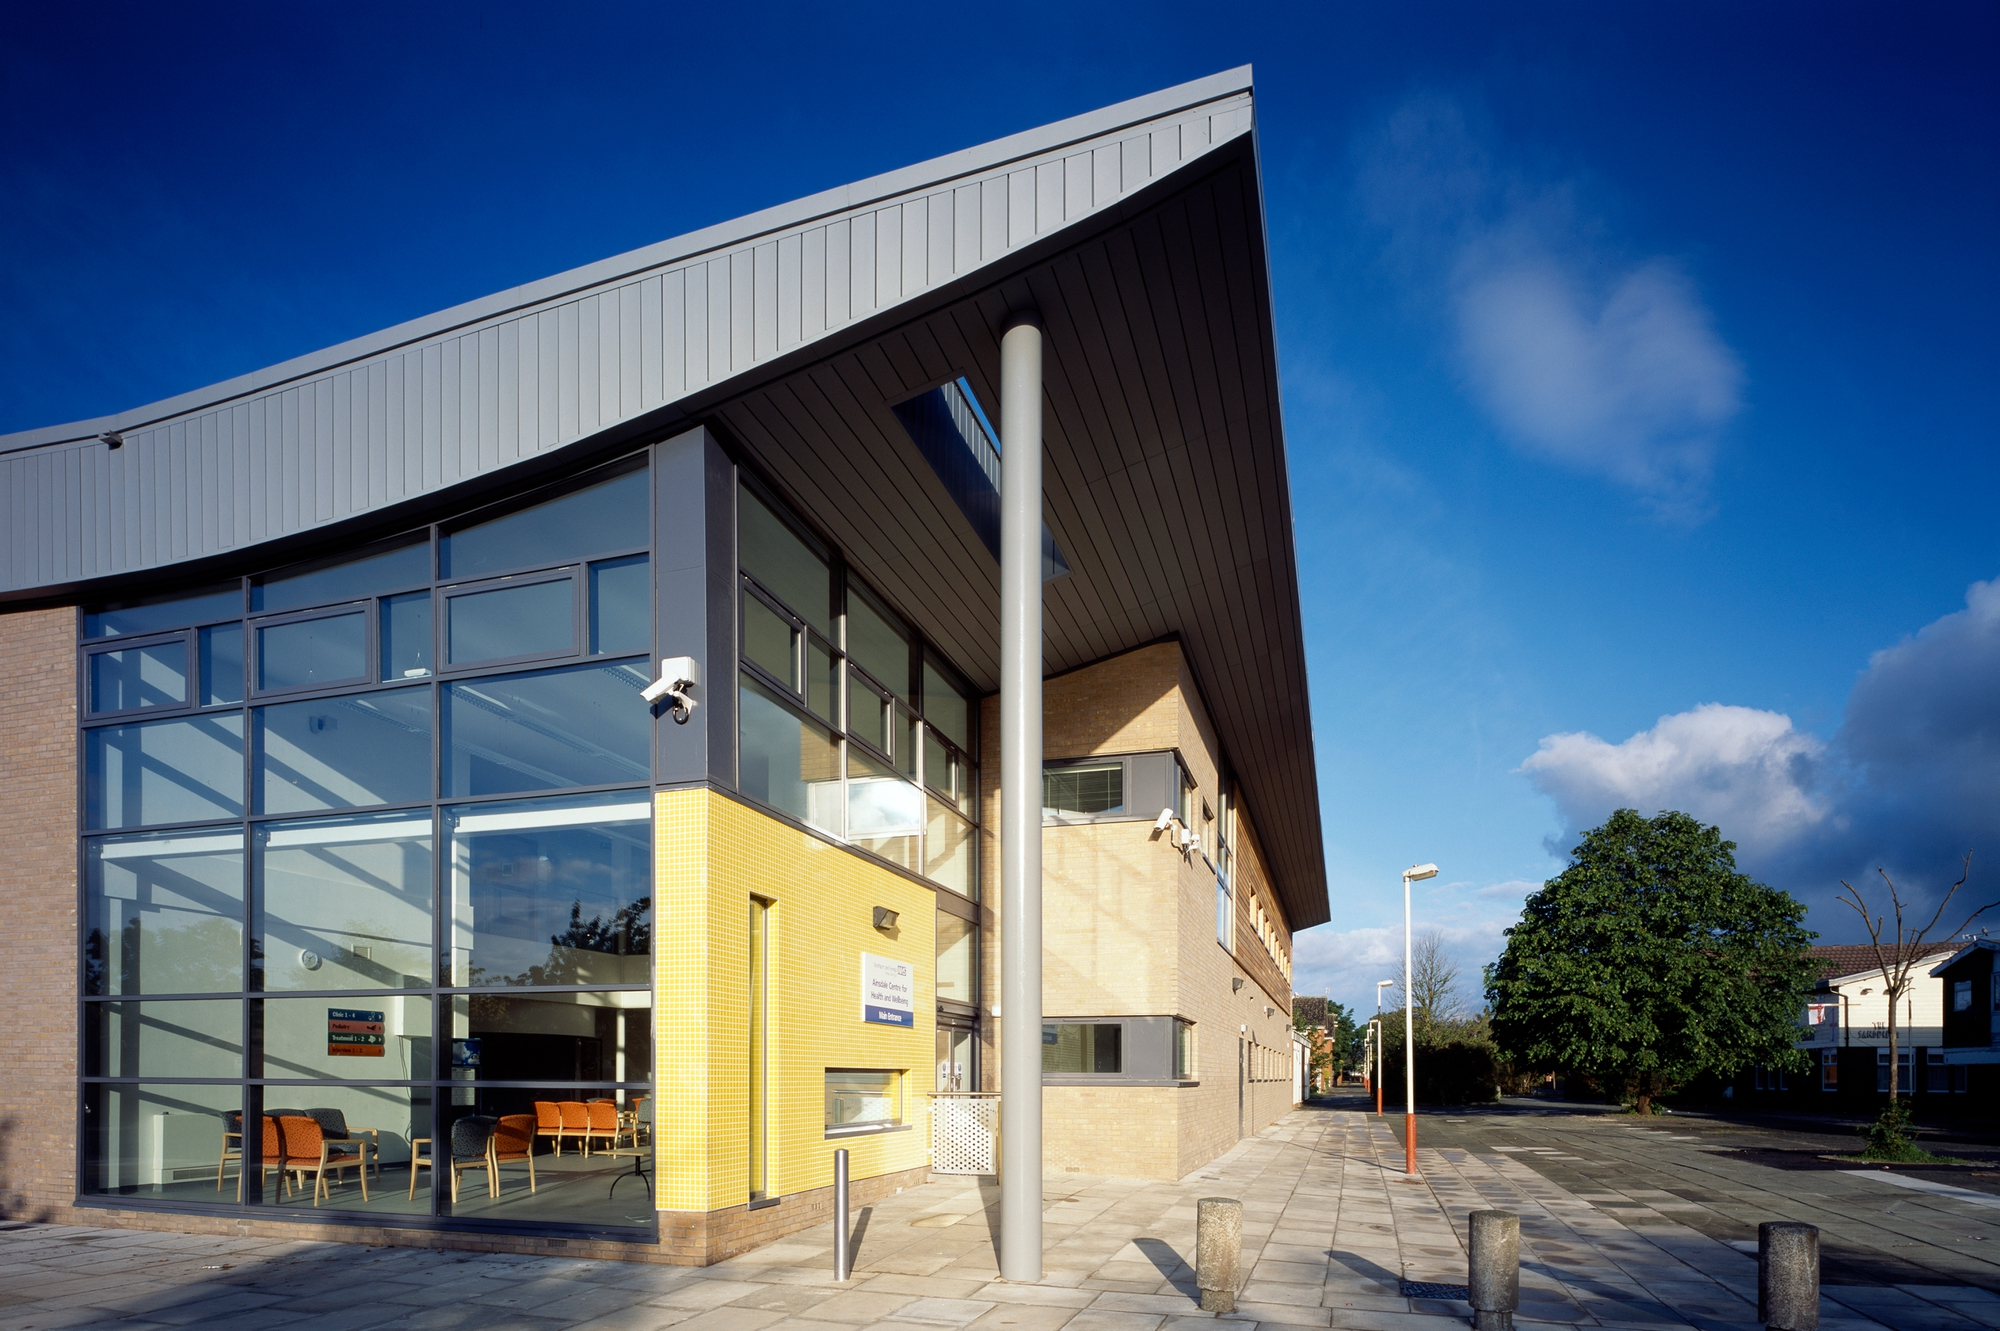 Ainsdale Centre for Health and Wellbeing